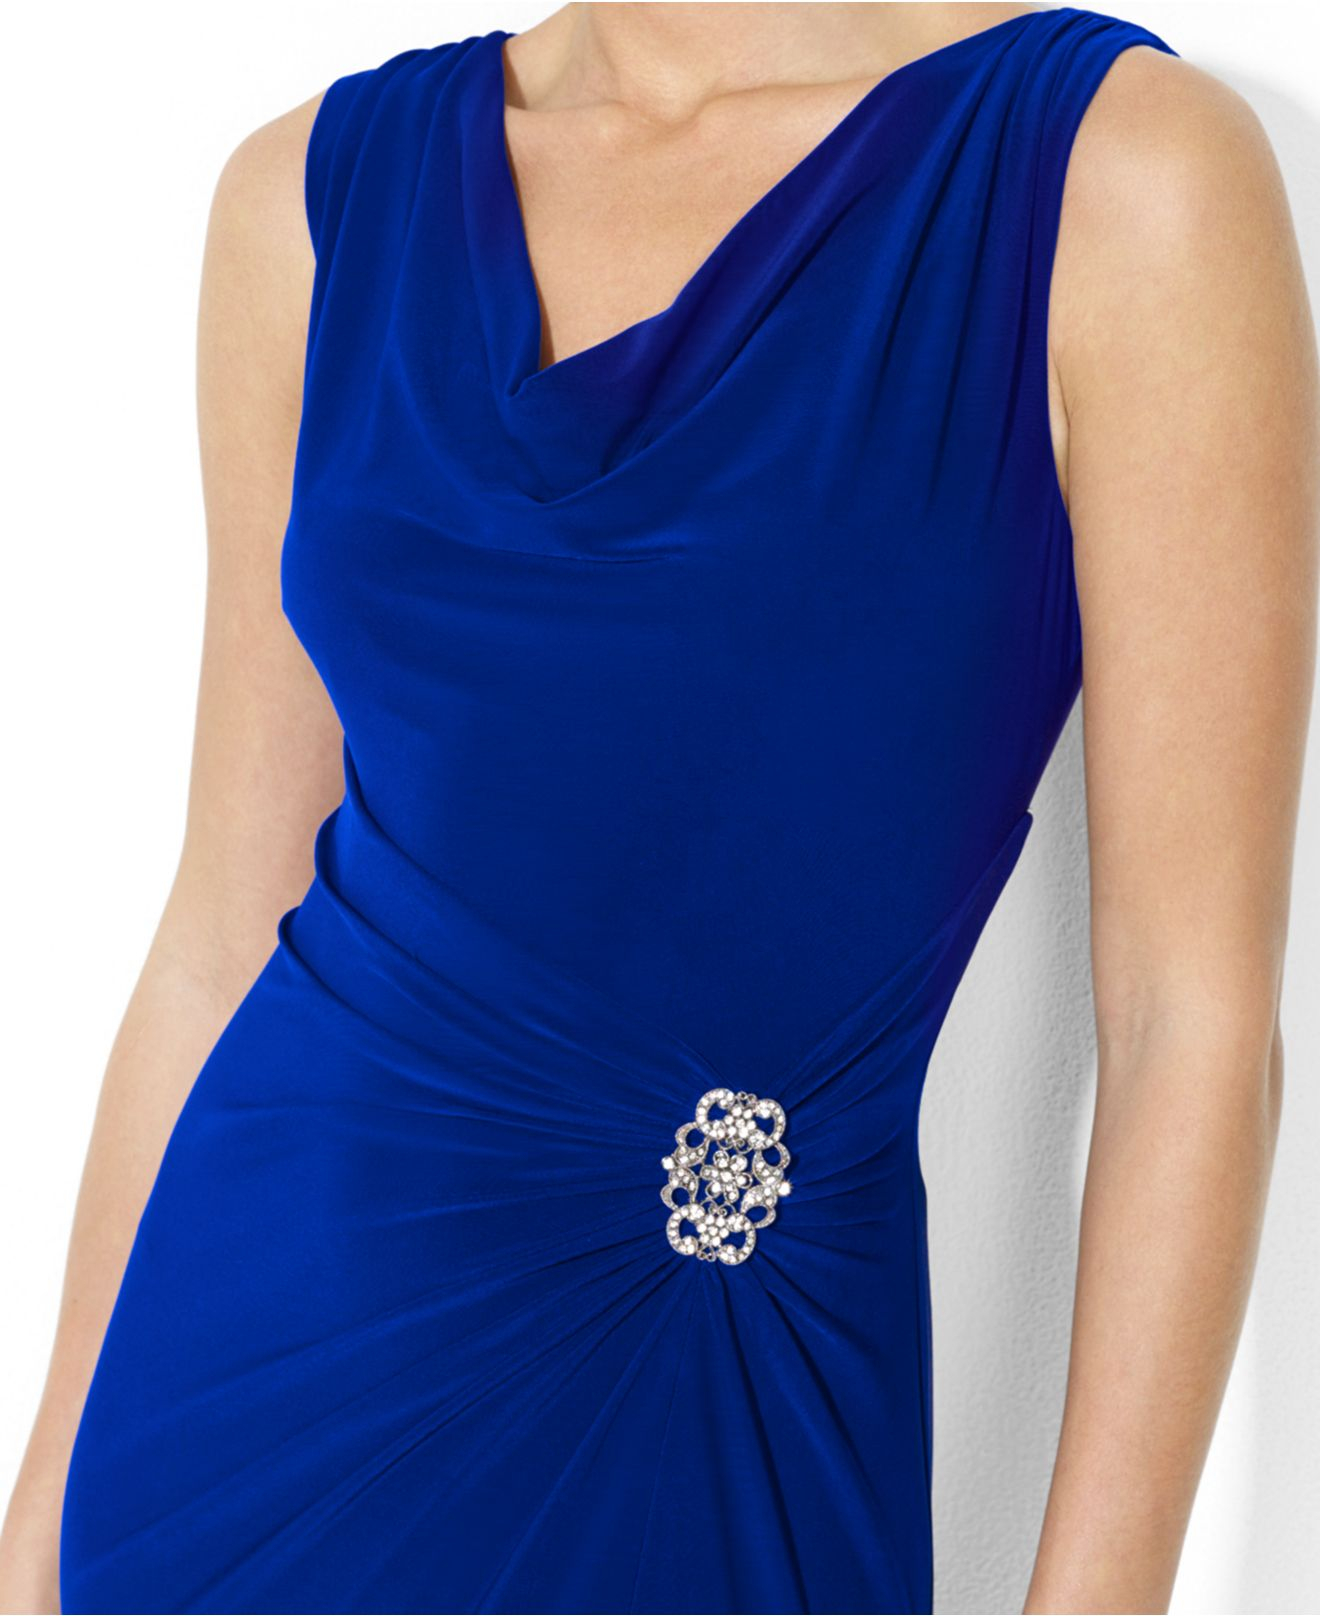 5716c4f8454 Lyst - Lauren by Ralph Lauren Sleeveless Cowl-Neck Jersey Gown in Blue